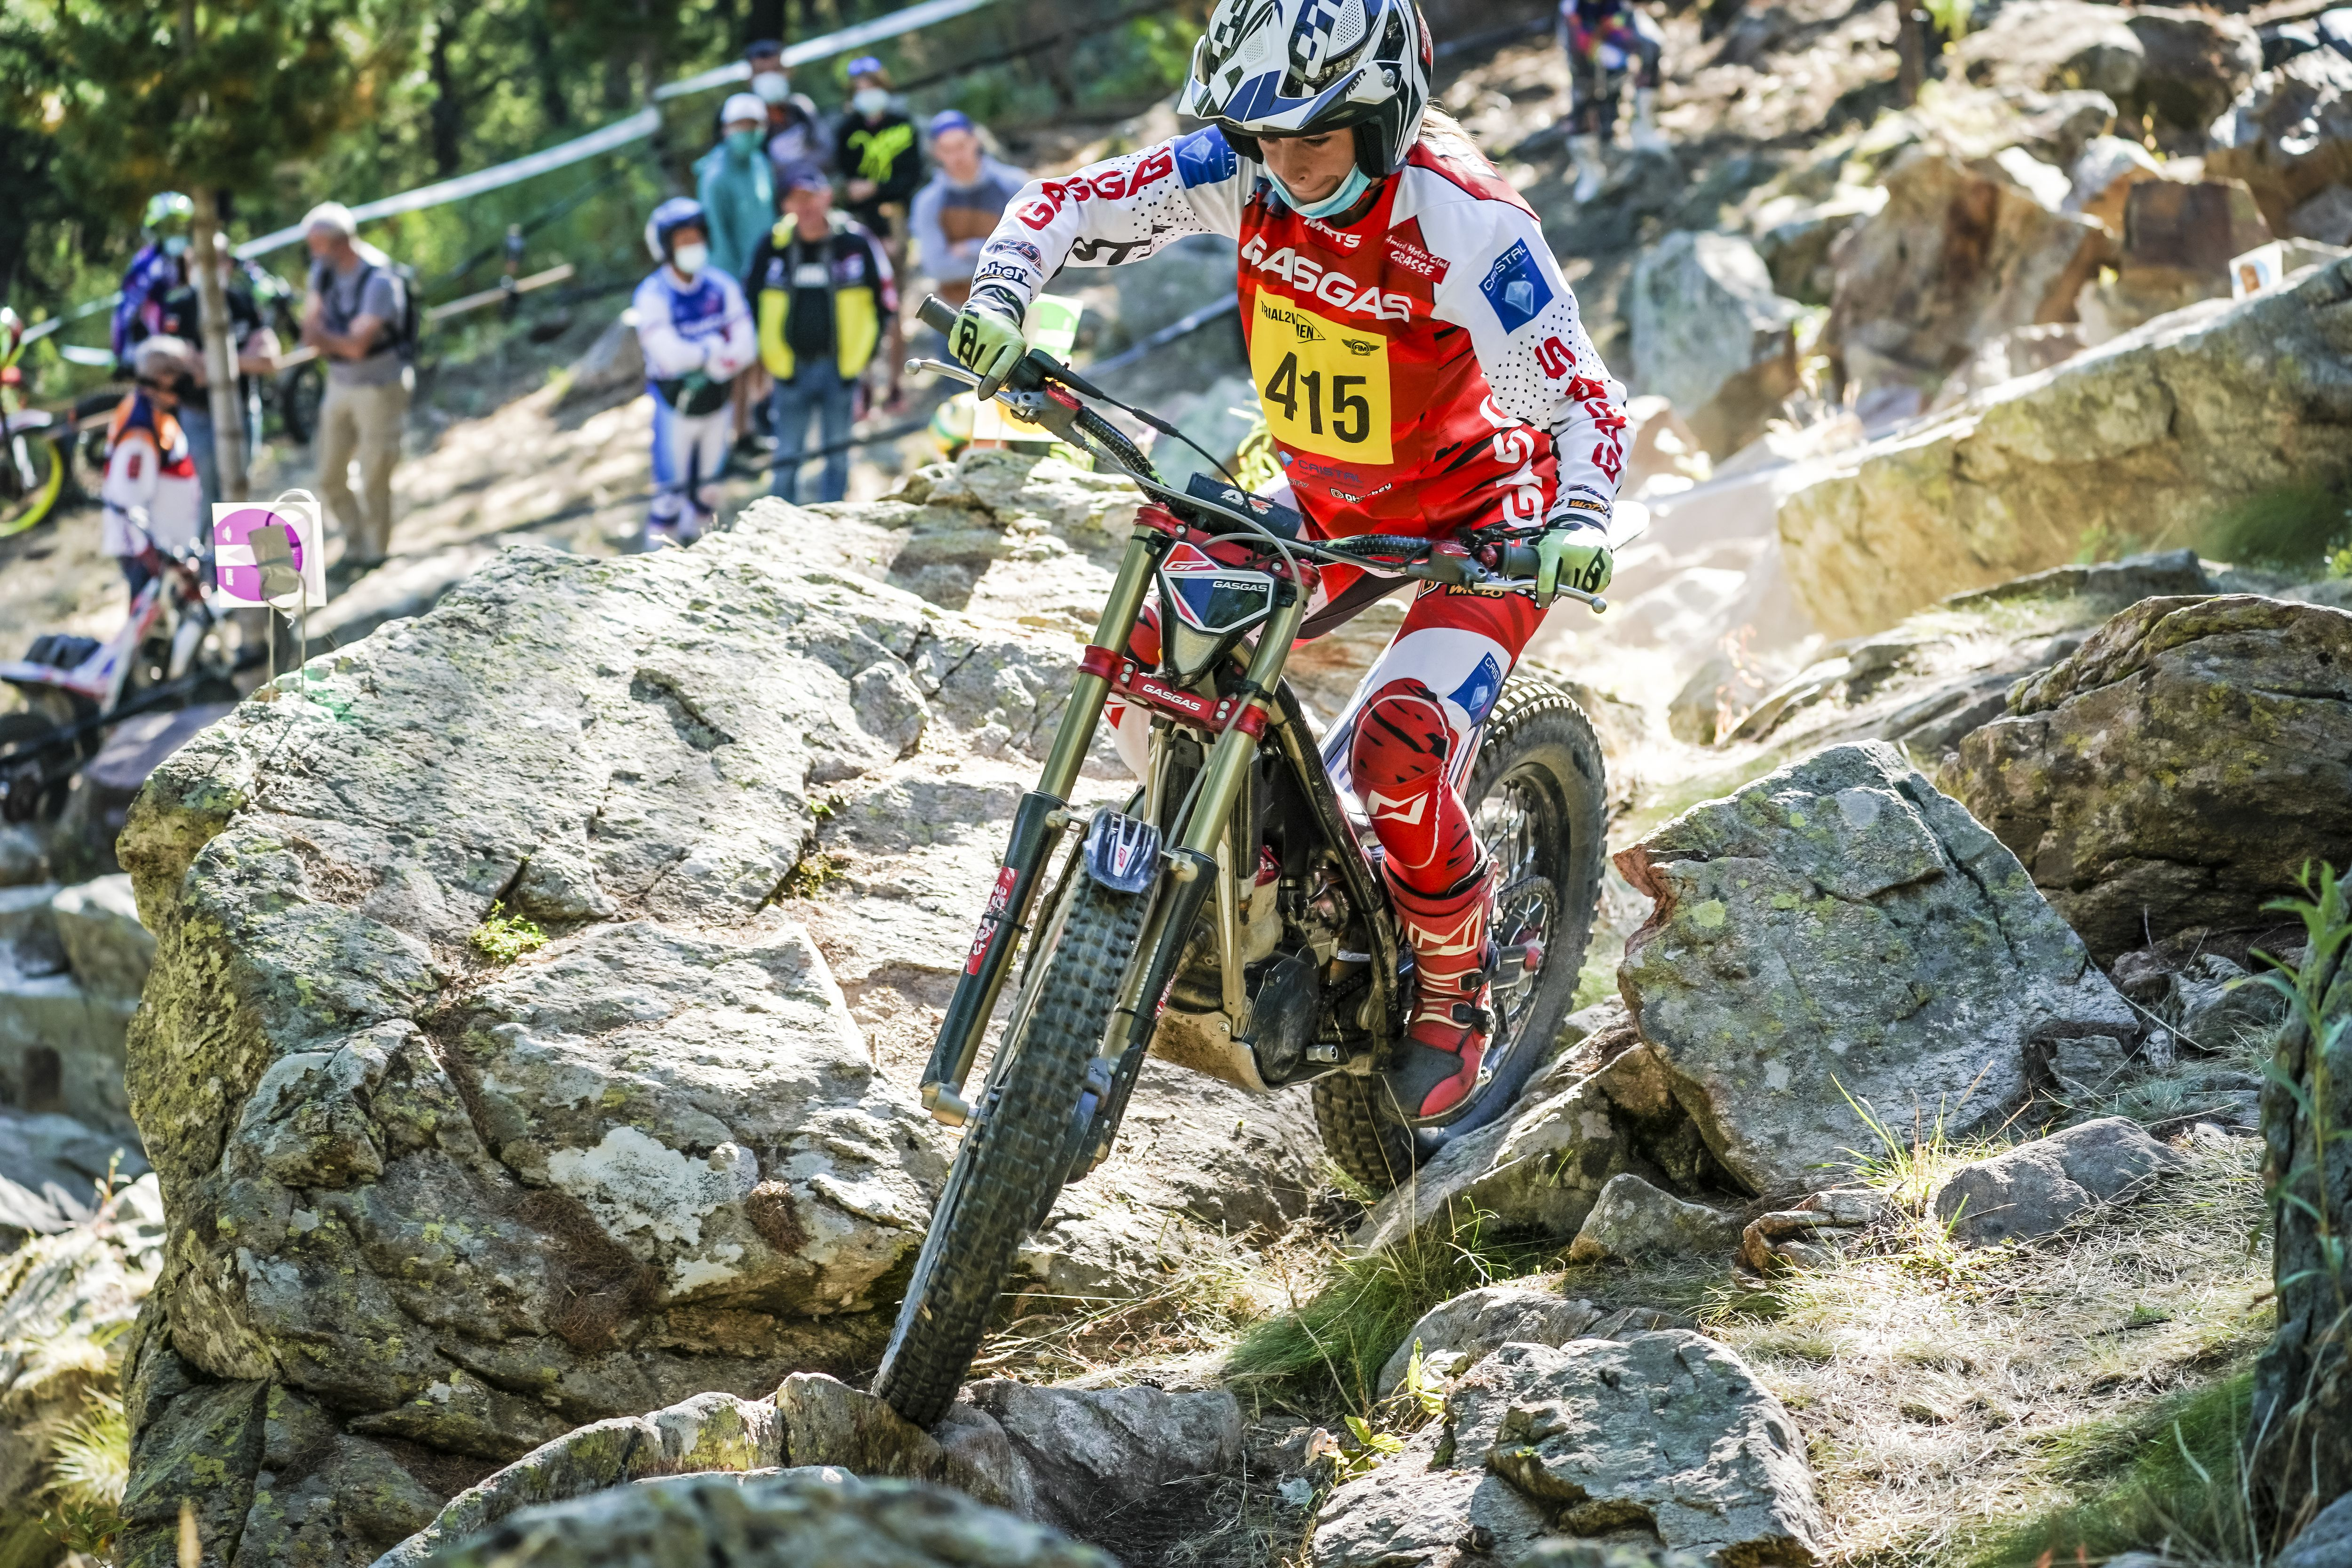 FIM Women's Trial2 World Cup